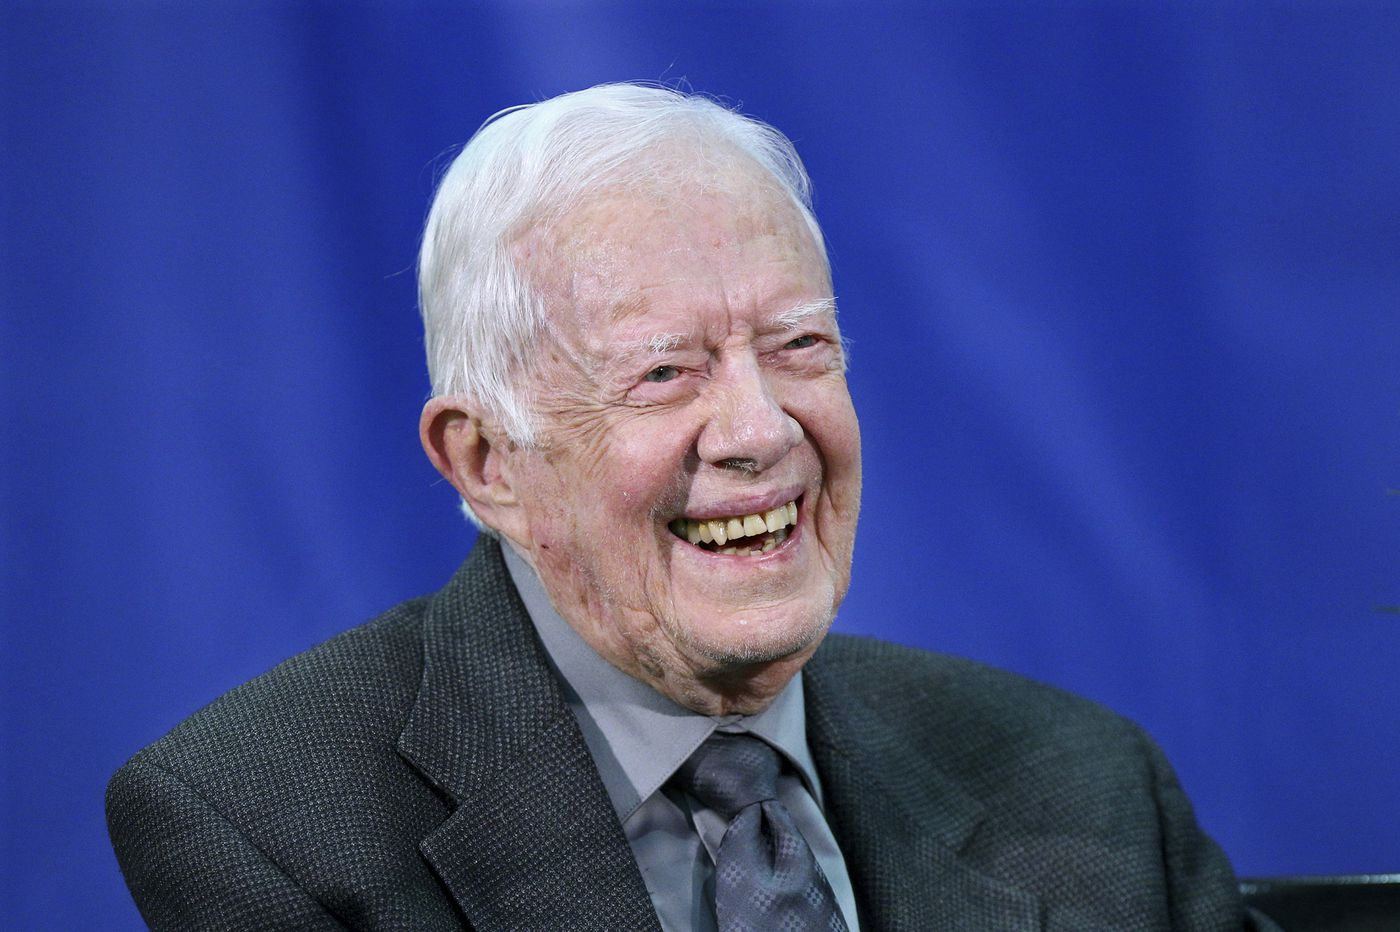 Jimmy Carter is about to become the longest-living president in American history